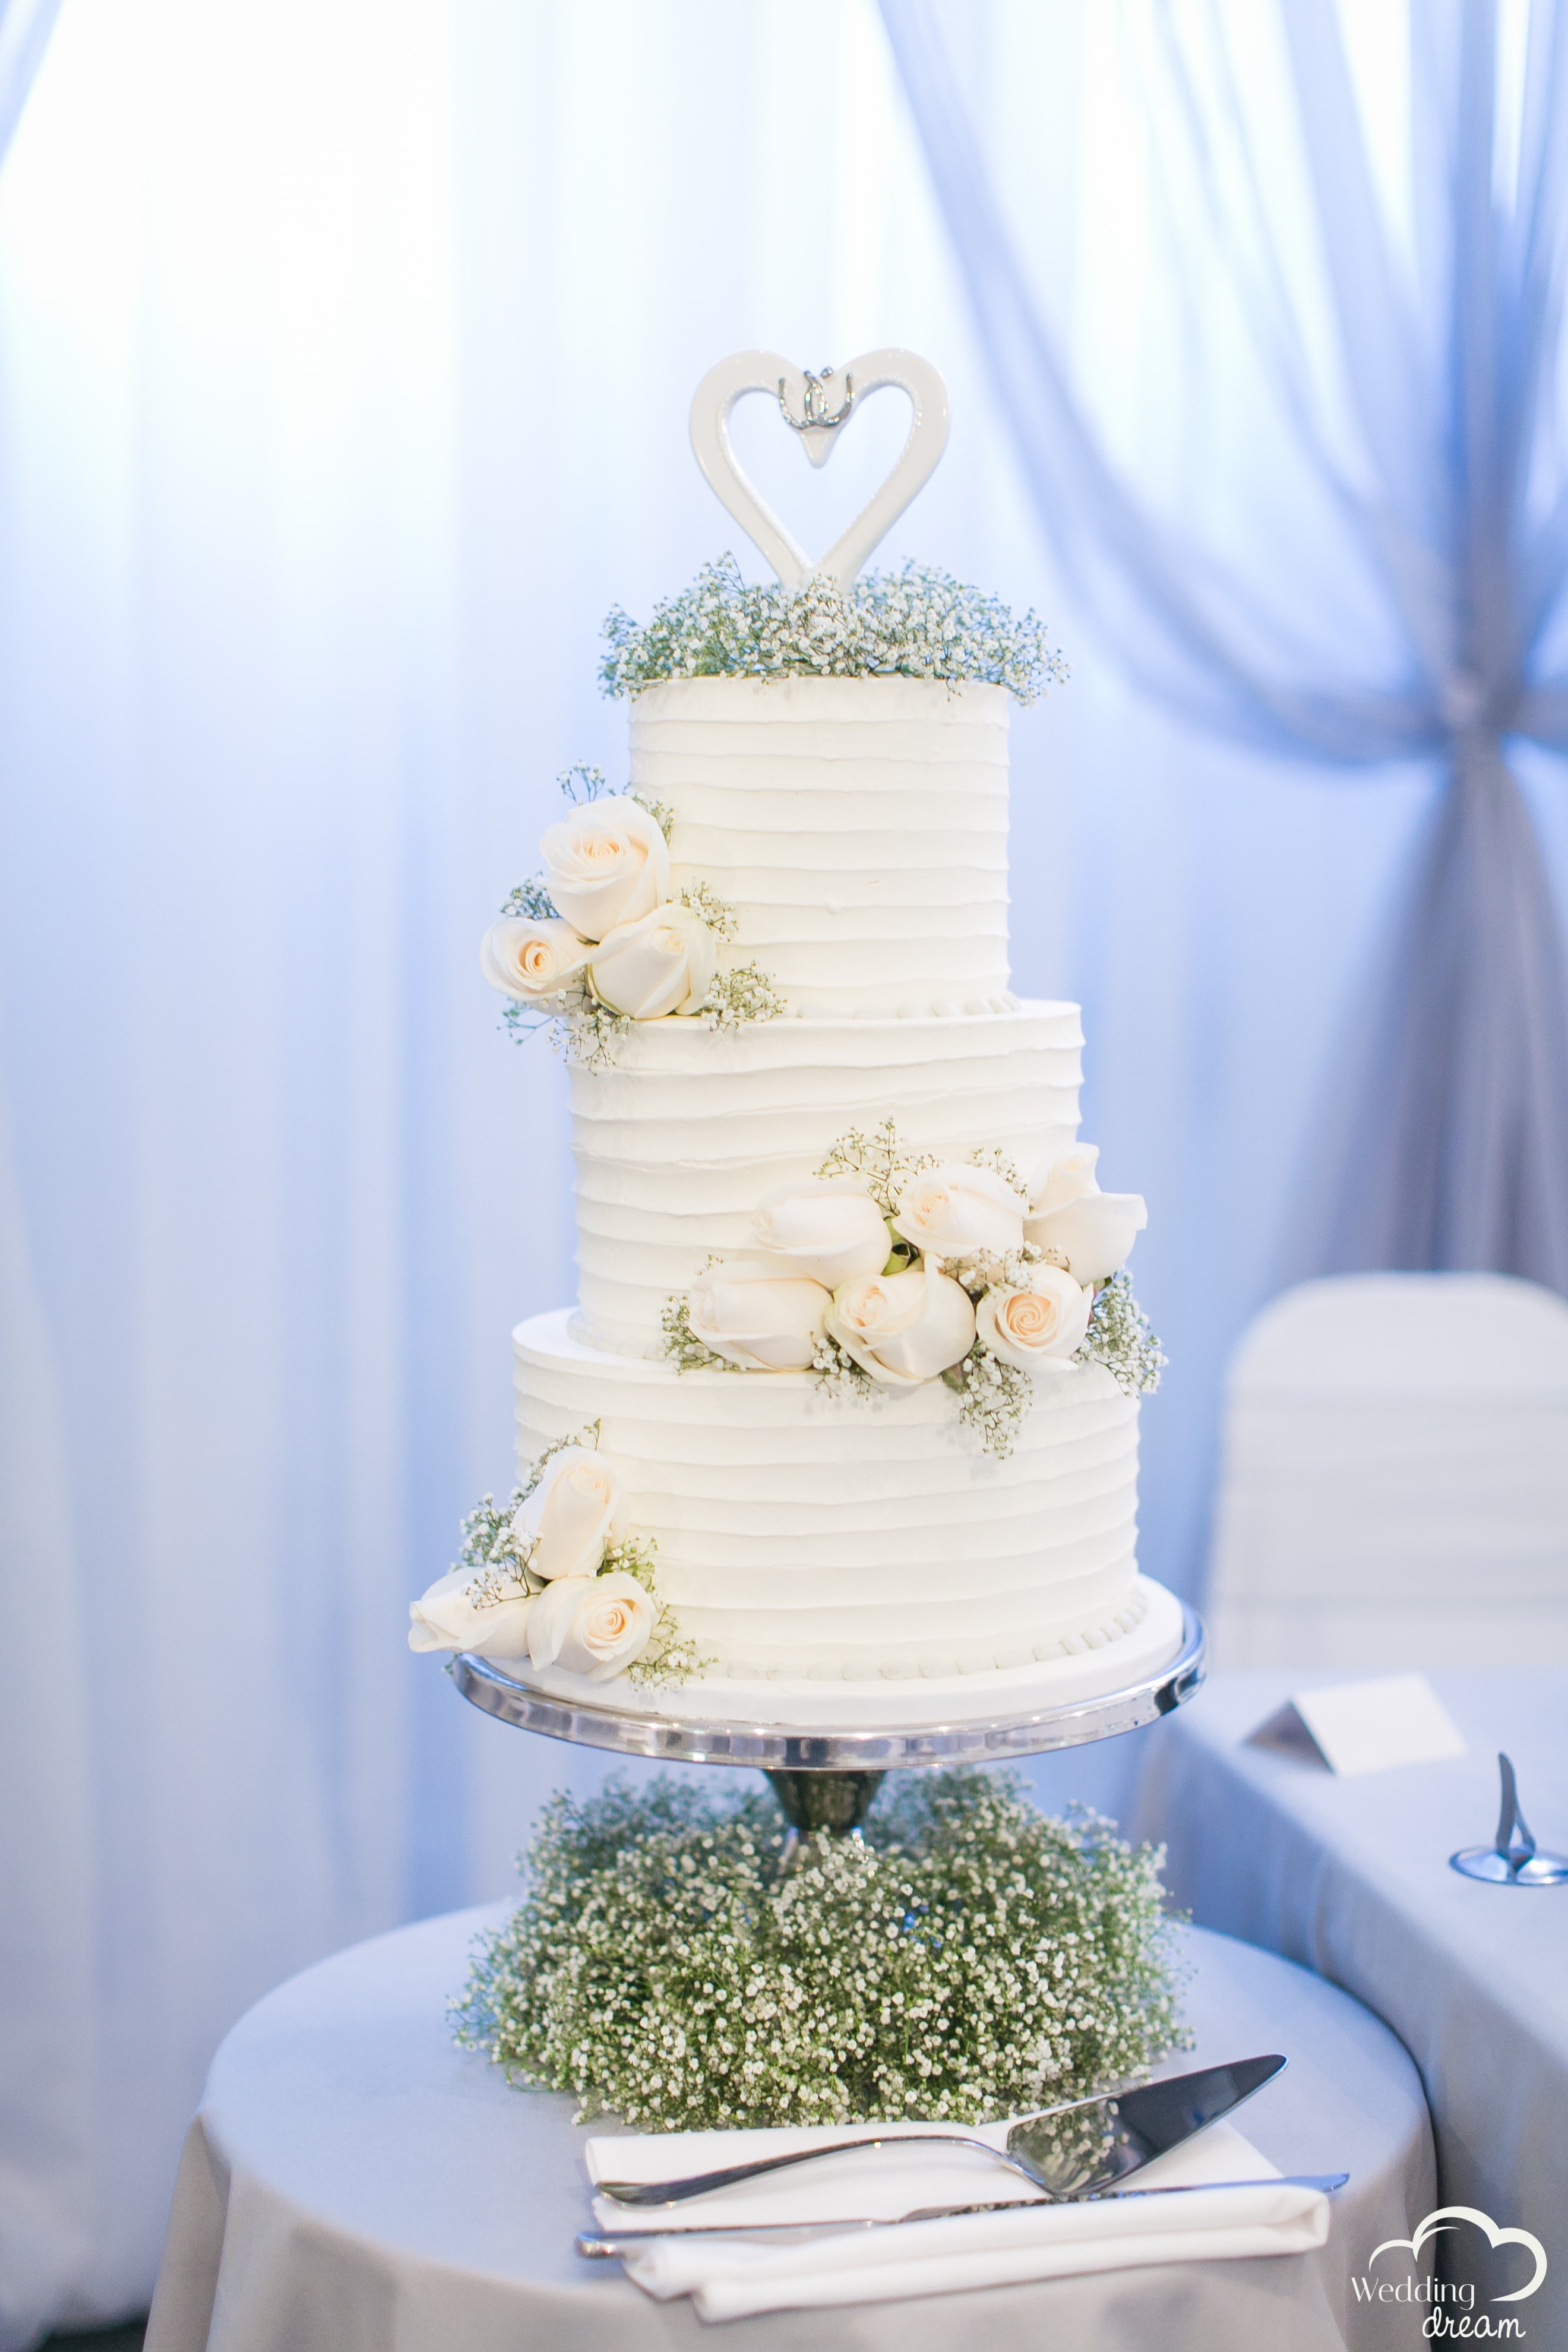 wedding cake kitchener waterloo wedding dream decor